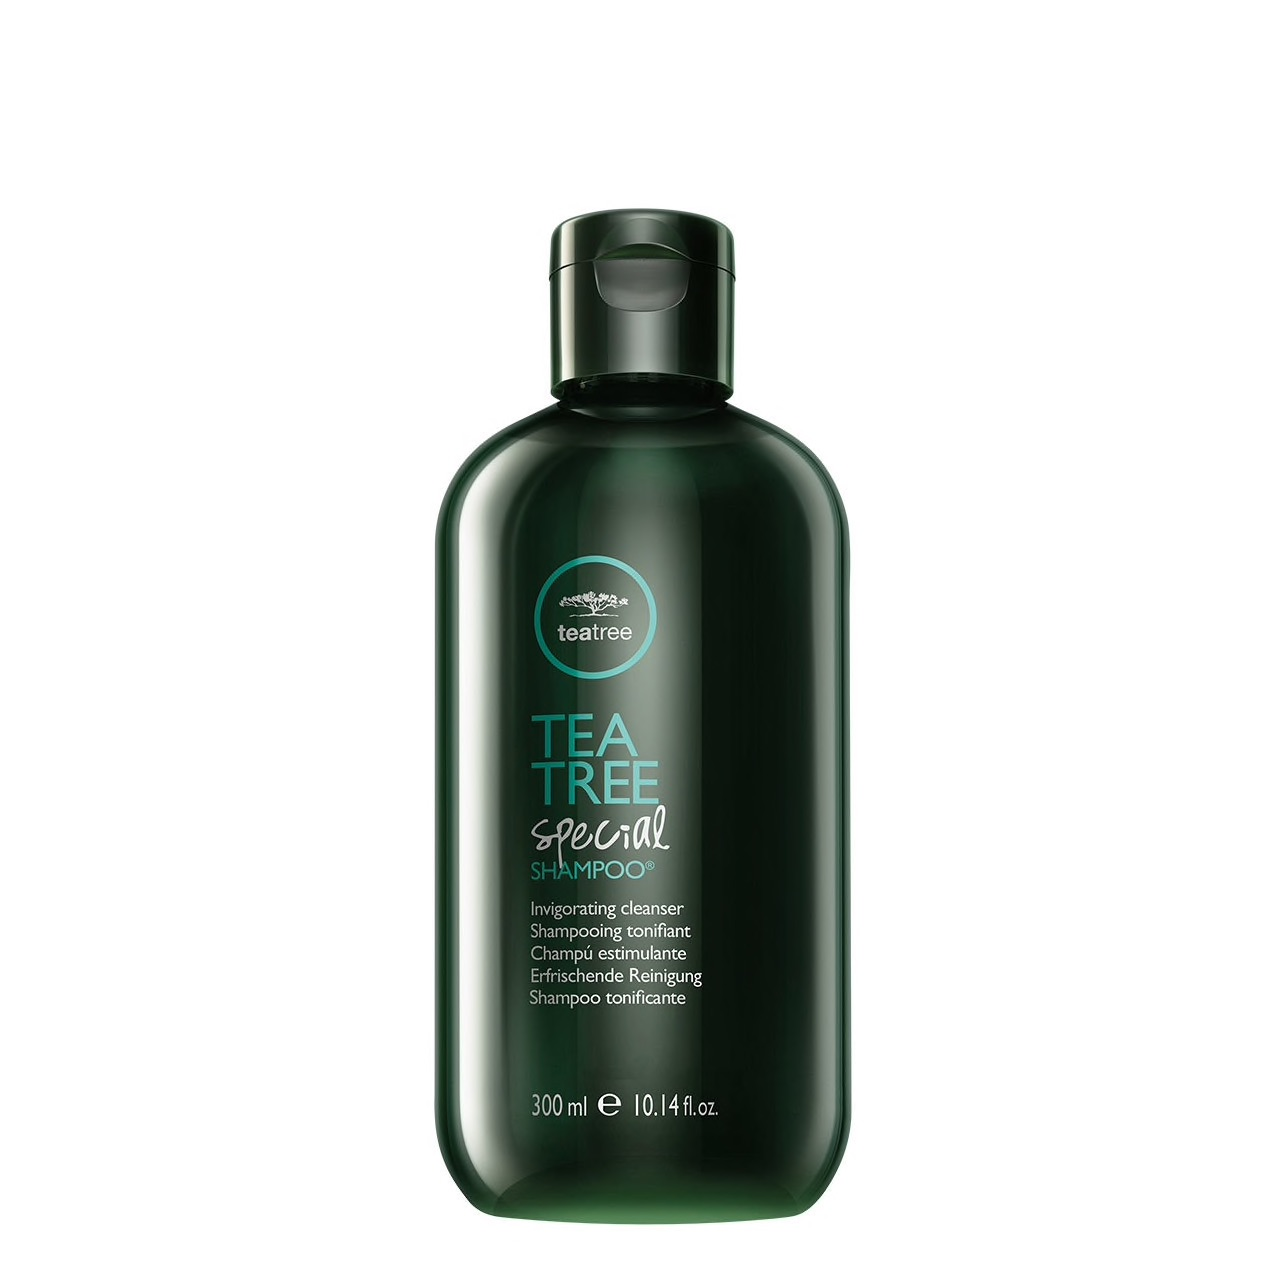 Tea Tree Special Shampoo by Paul Mitchell